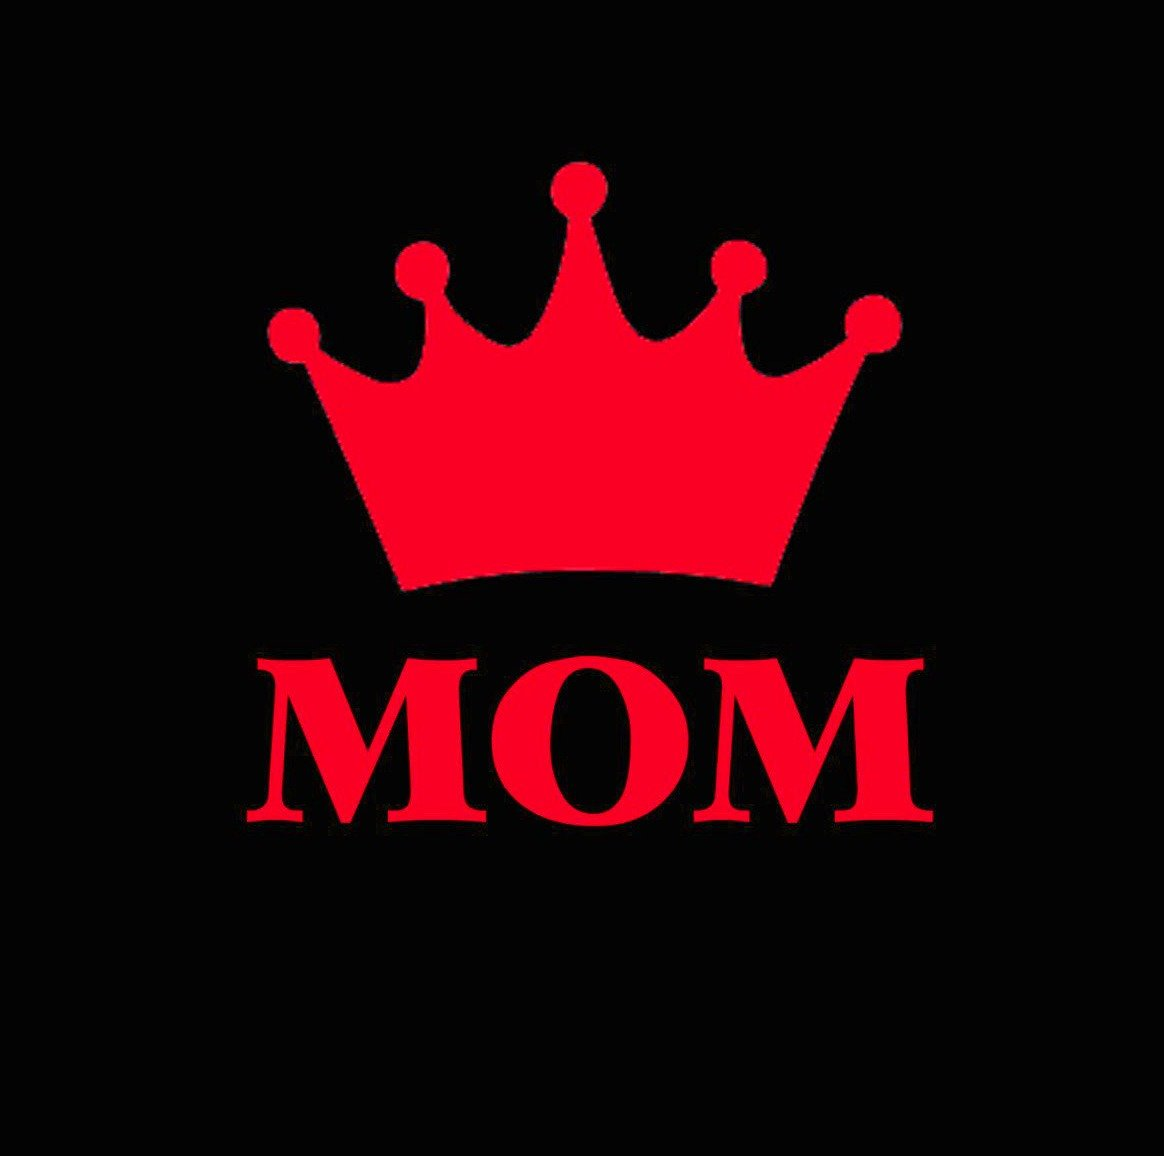 Mom Dad Whatsapp DP Pics Download